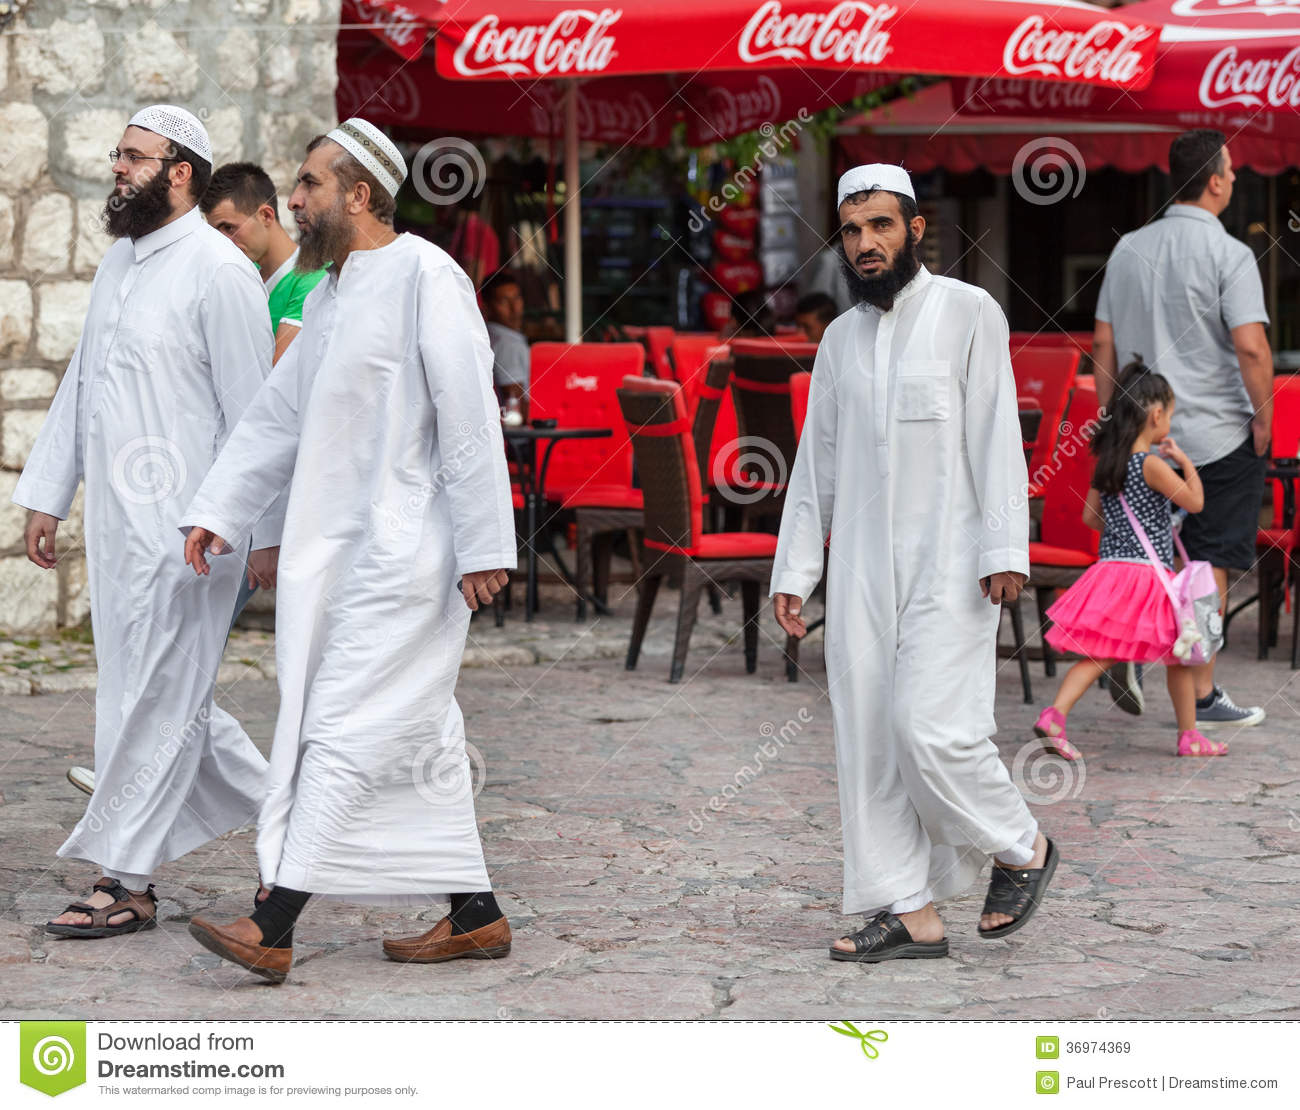 muslim single men in harvest Meet muslim men in the usa find attractive muslim men in the usa on lovehabibi - your online destination for meeting muslim men whether you're looking for a serious relationship or husband, don't let life pass you by.